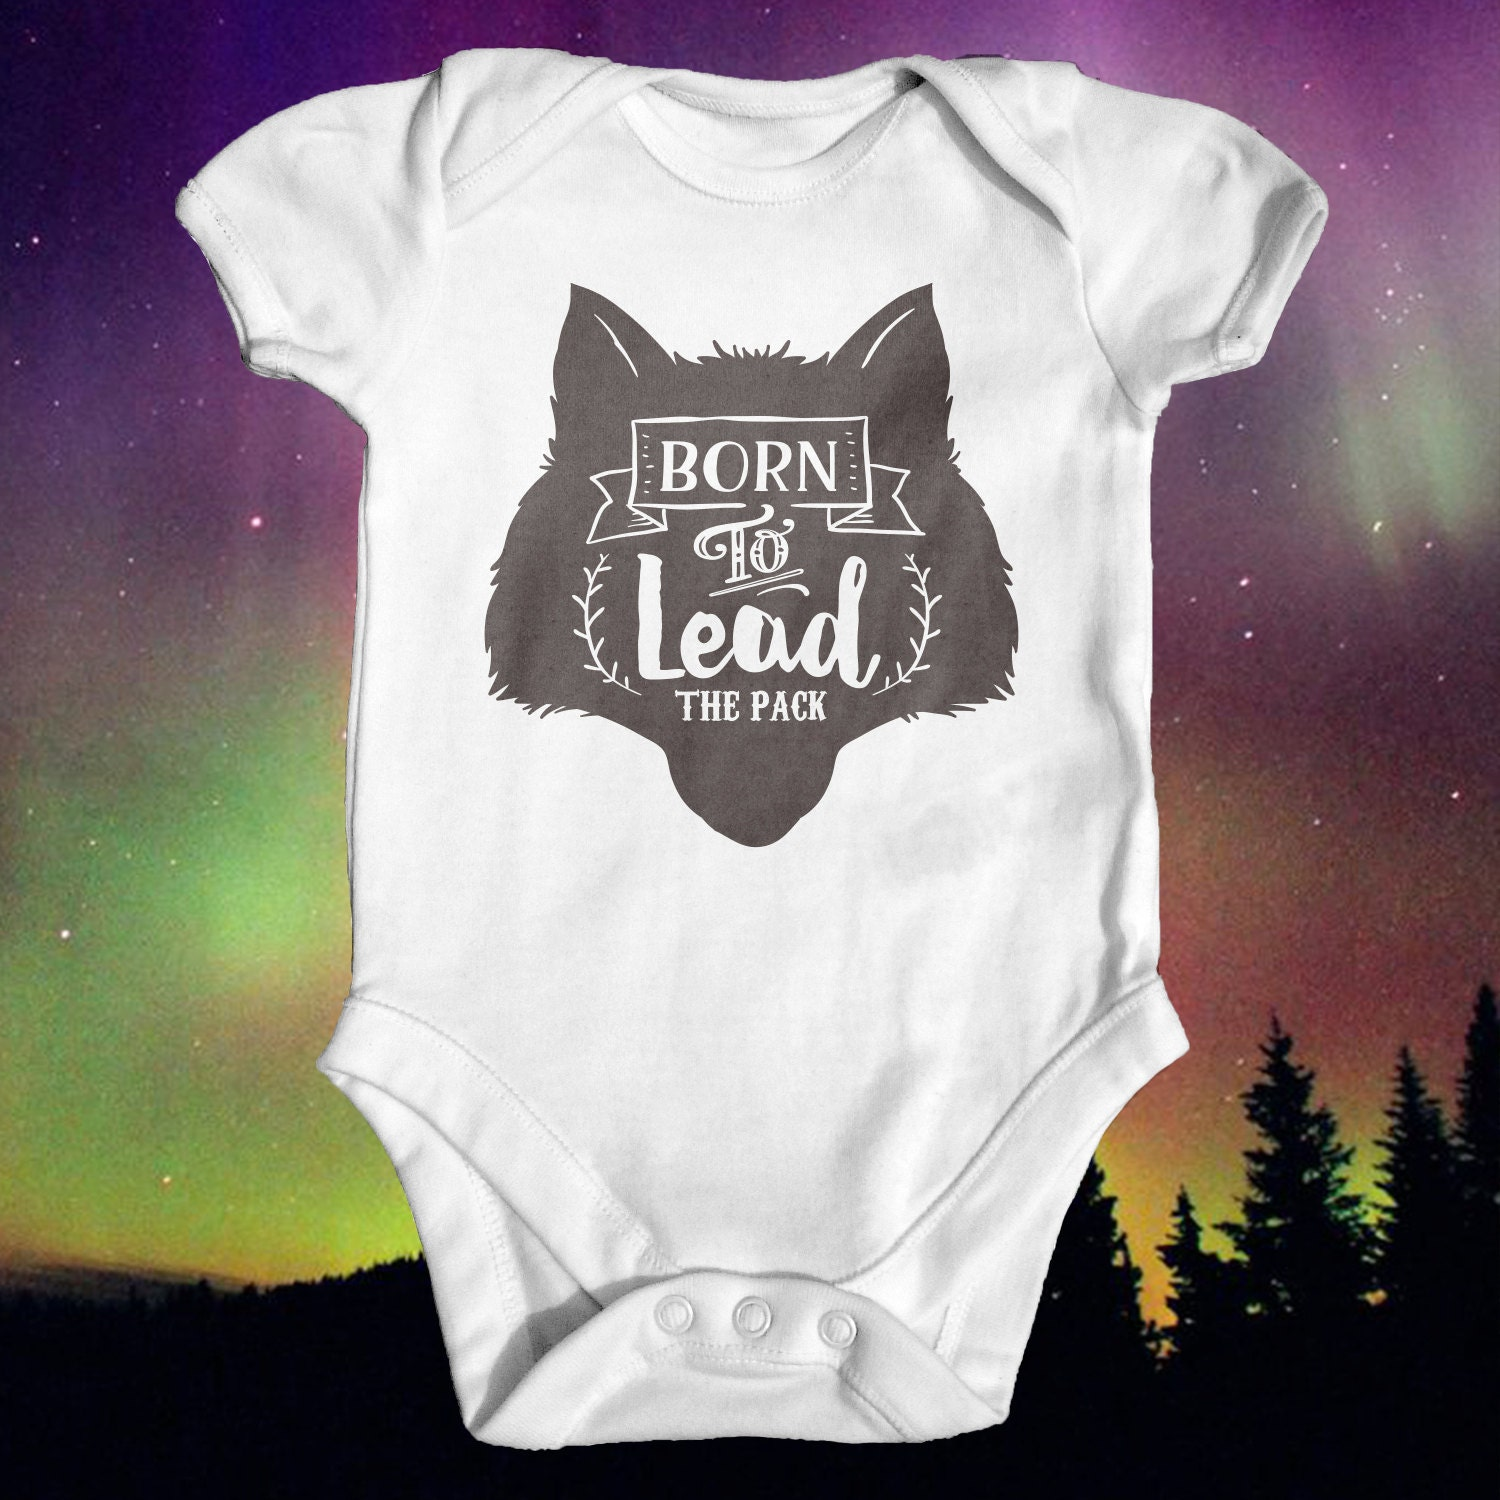 Wolf Pack Leader Baby Bodyusuit Baby Shower Gift Cute Baby